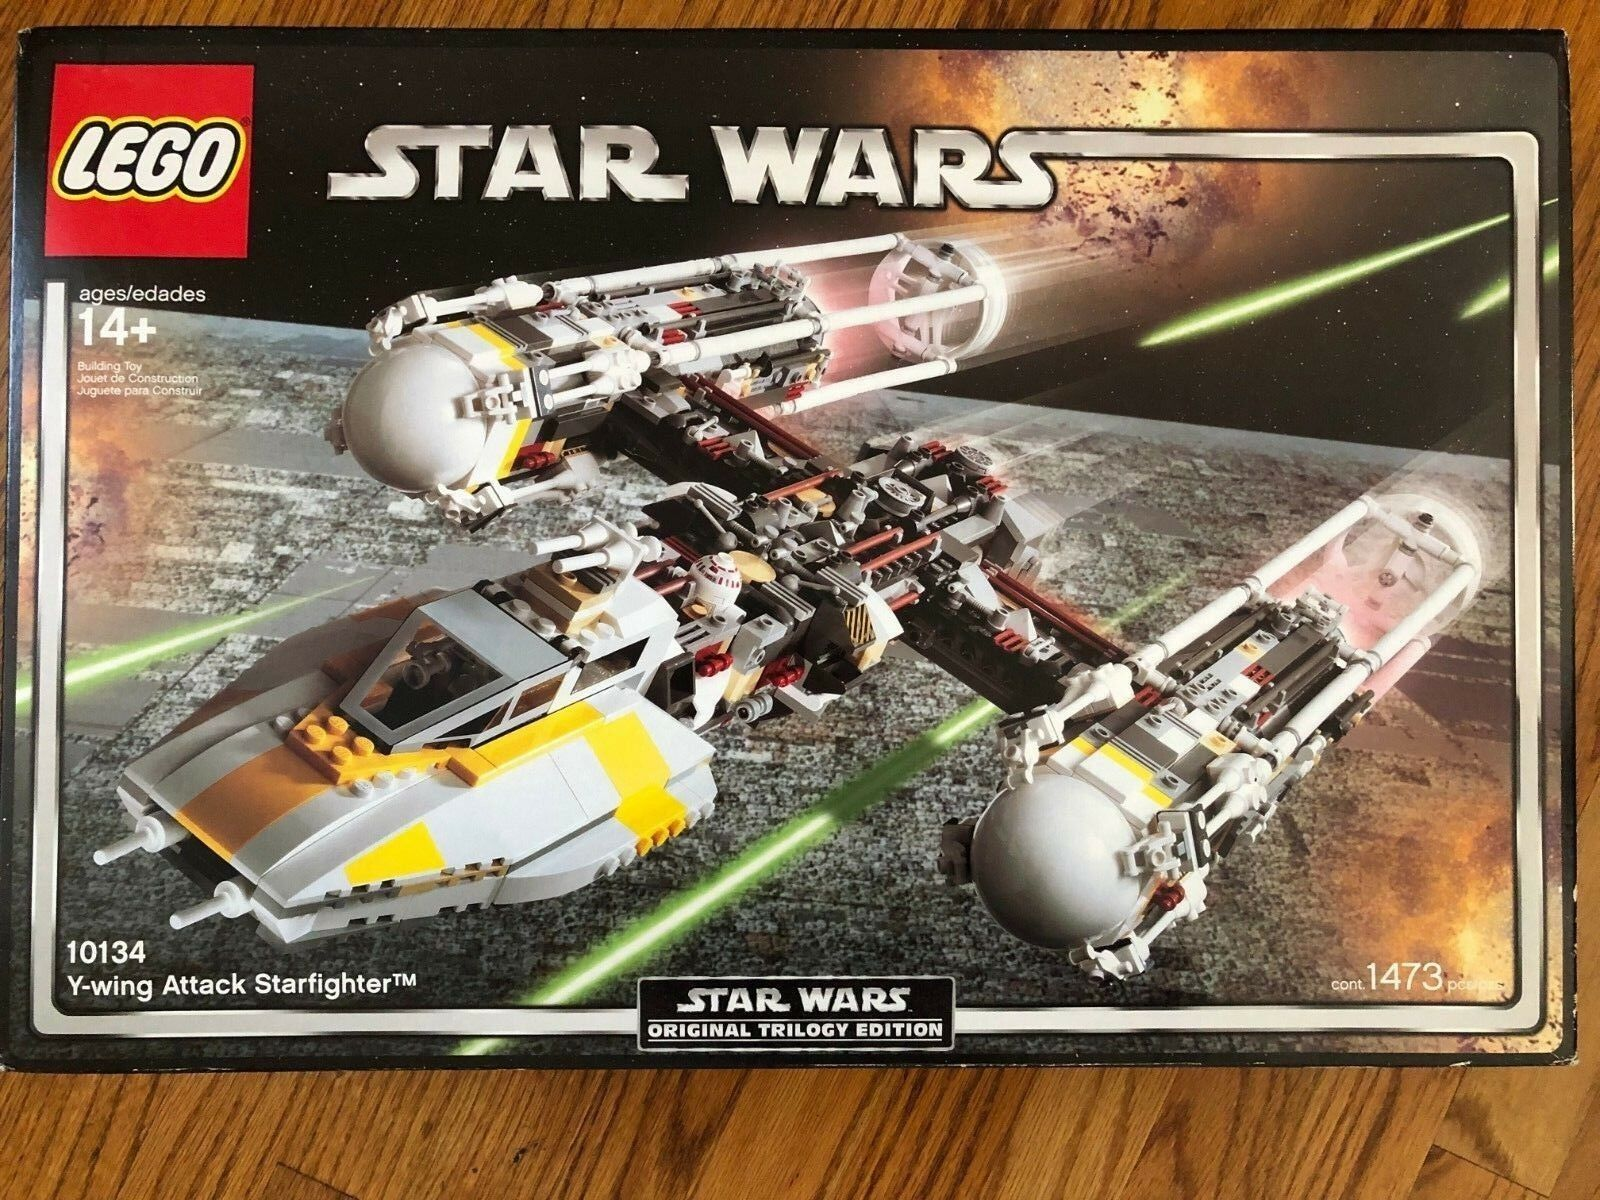 LEGO Star Wars Original Trilogy Edition Y-Wing set BRAND BRAND BRAND NEW Sealed 6e996a